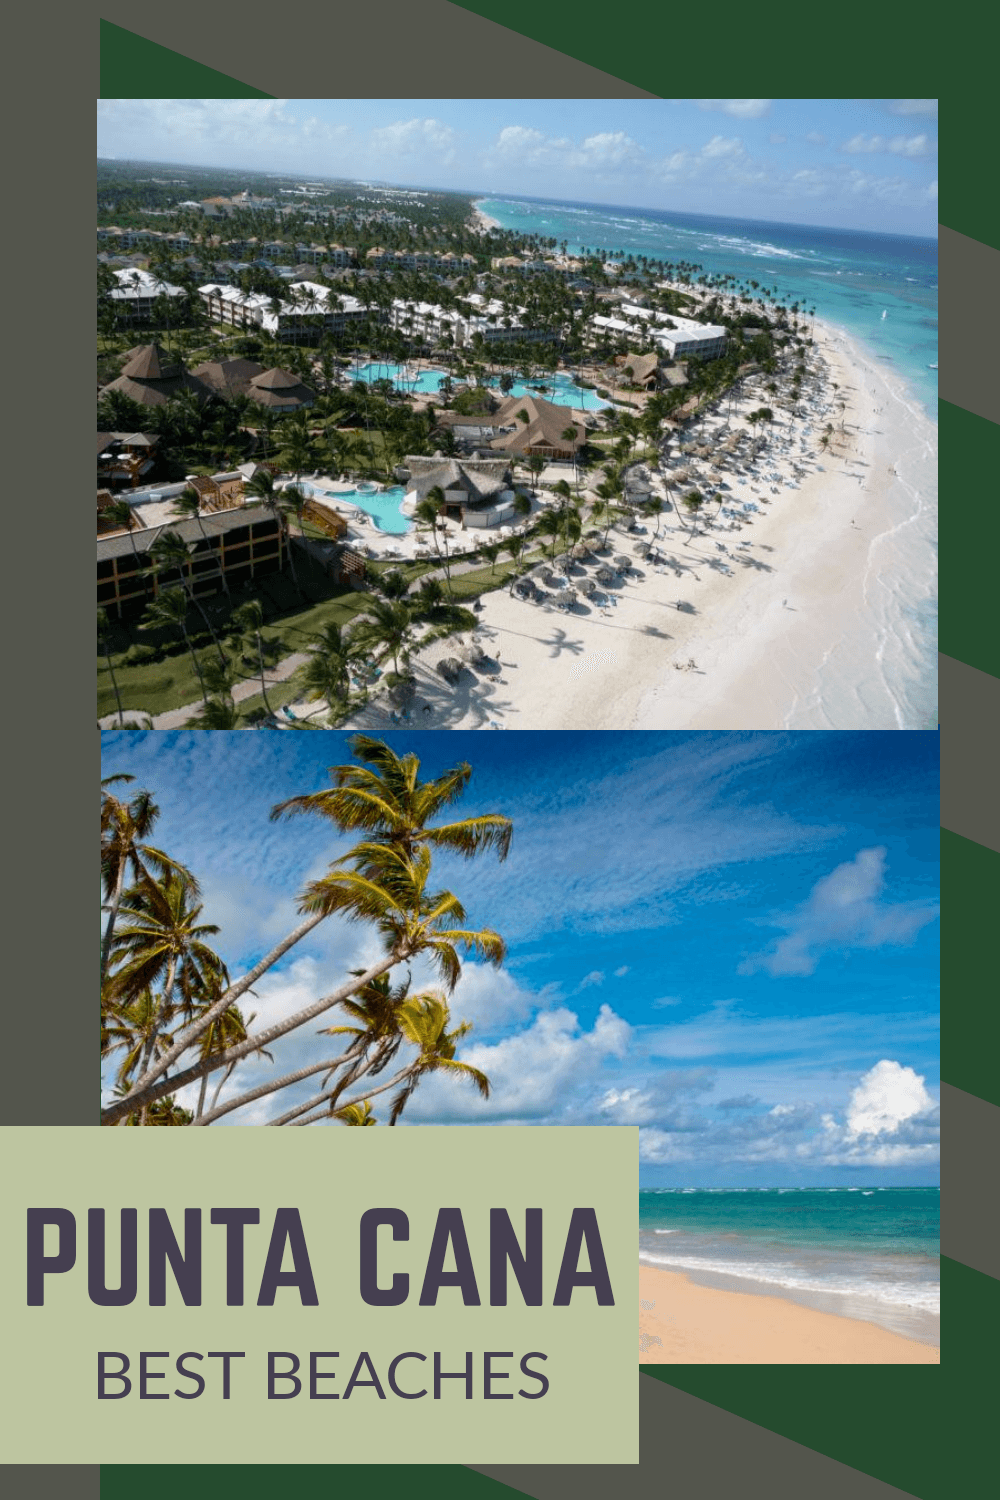 List of the Best Beaches in Punta Cana, Dominican Republic